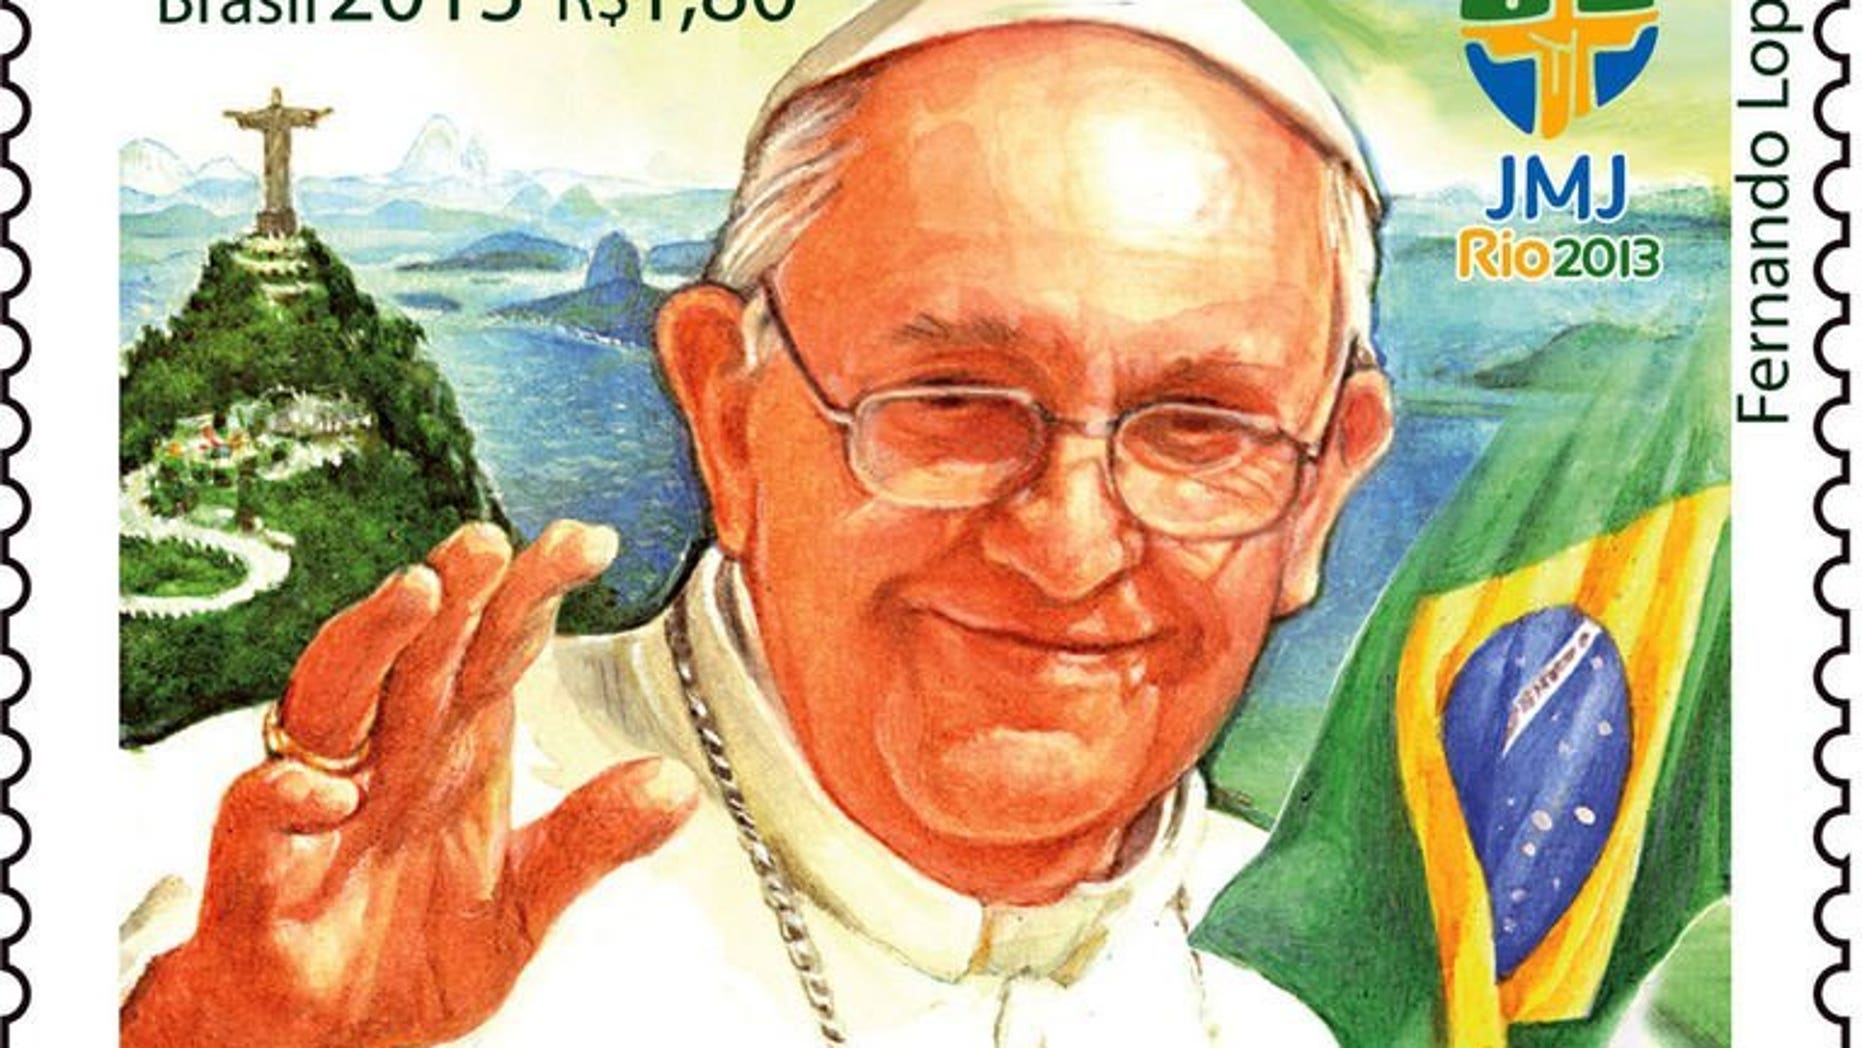 This handout photo shows a stamp commemorating Pope Francis' visit to Rio de Janeiro, Brazil. The stamp will begin circulating Tuesday after the inaugural mass of World Youth Day on Rio's famed Copacabana beach, the post office said.